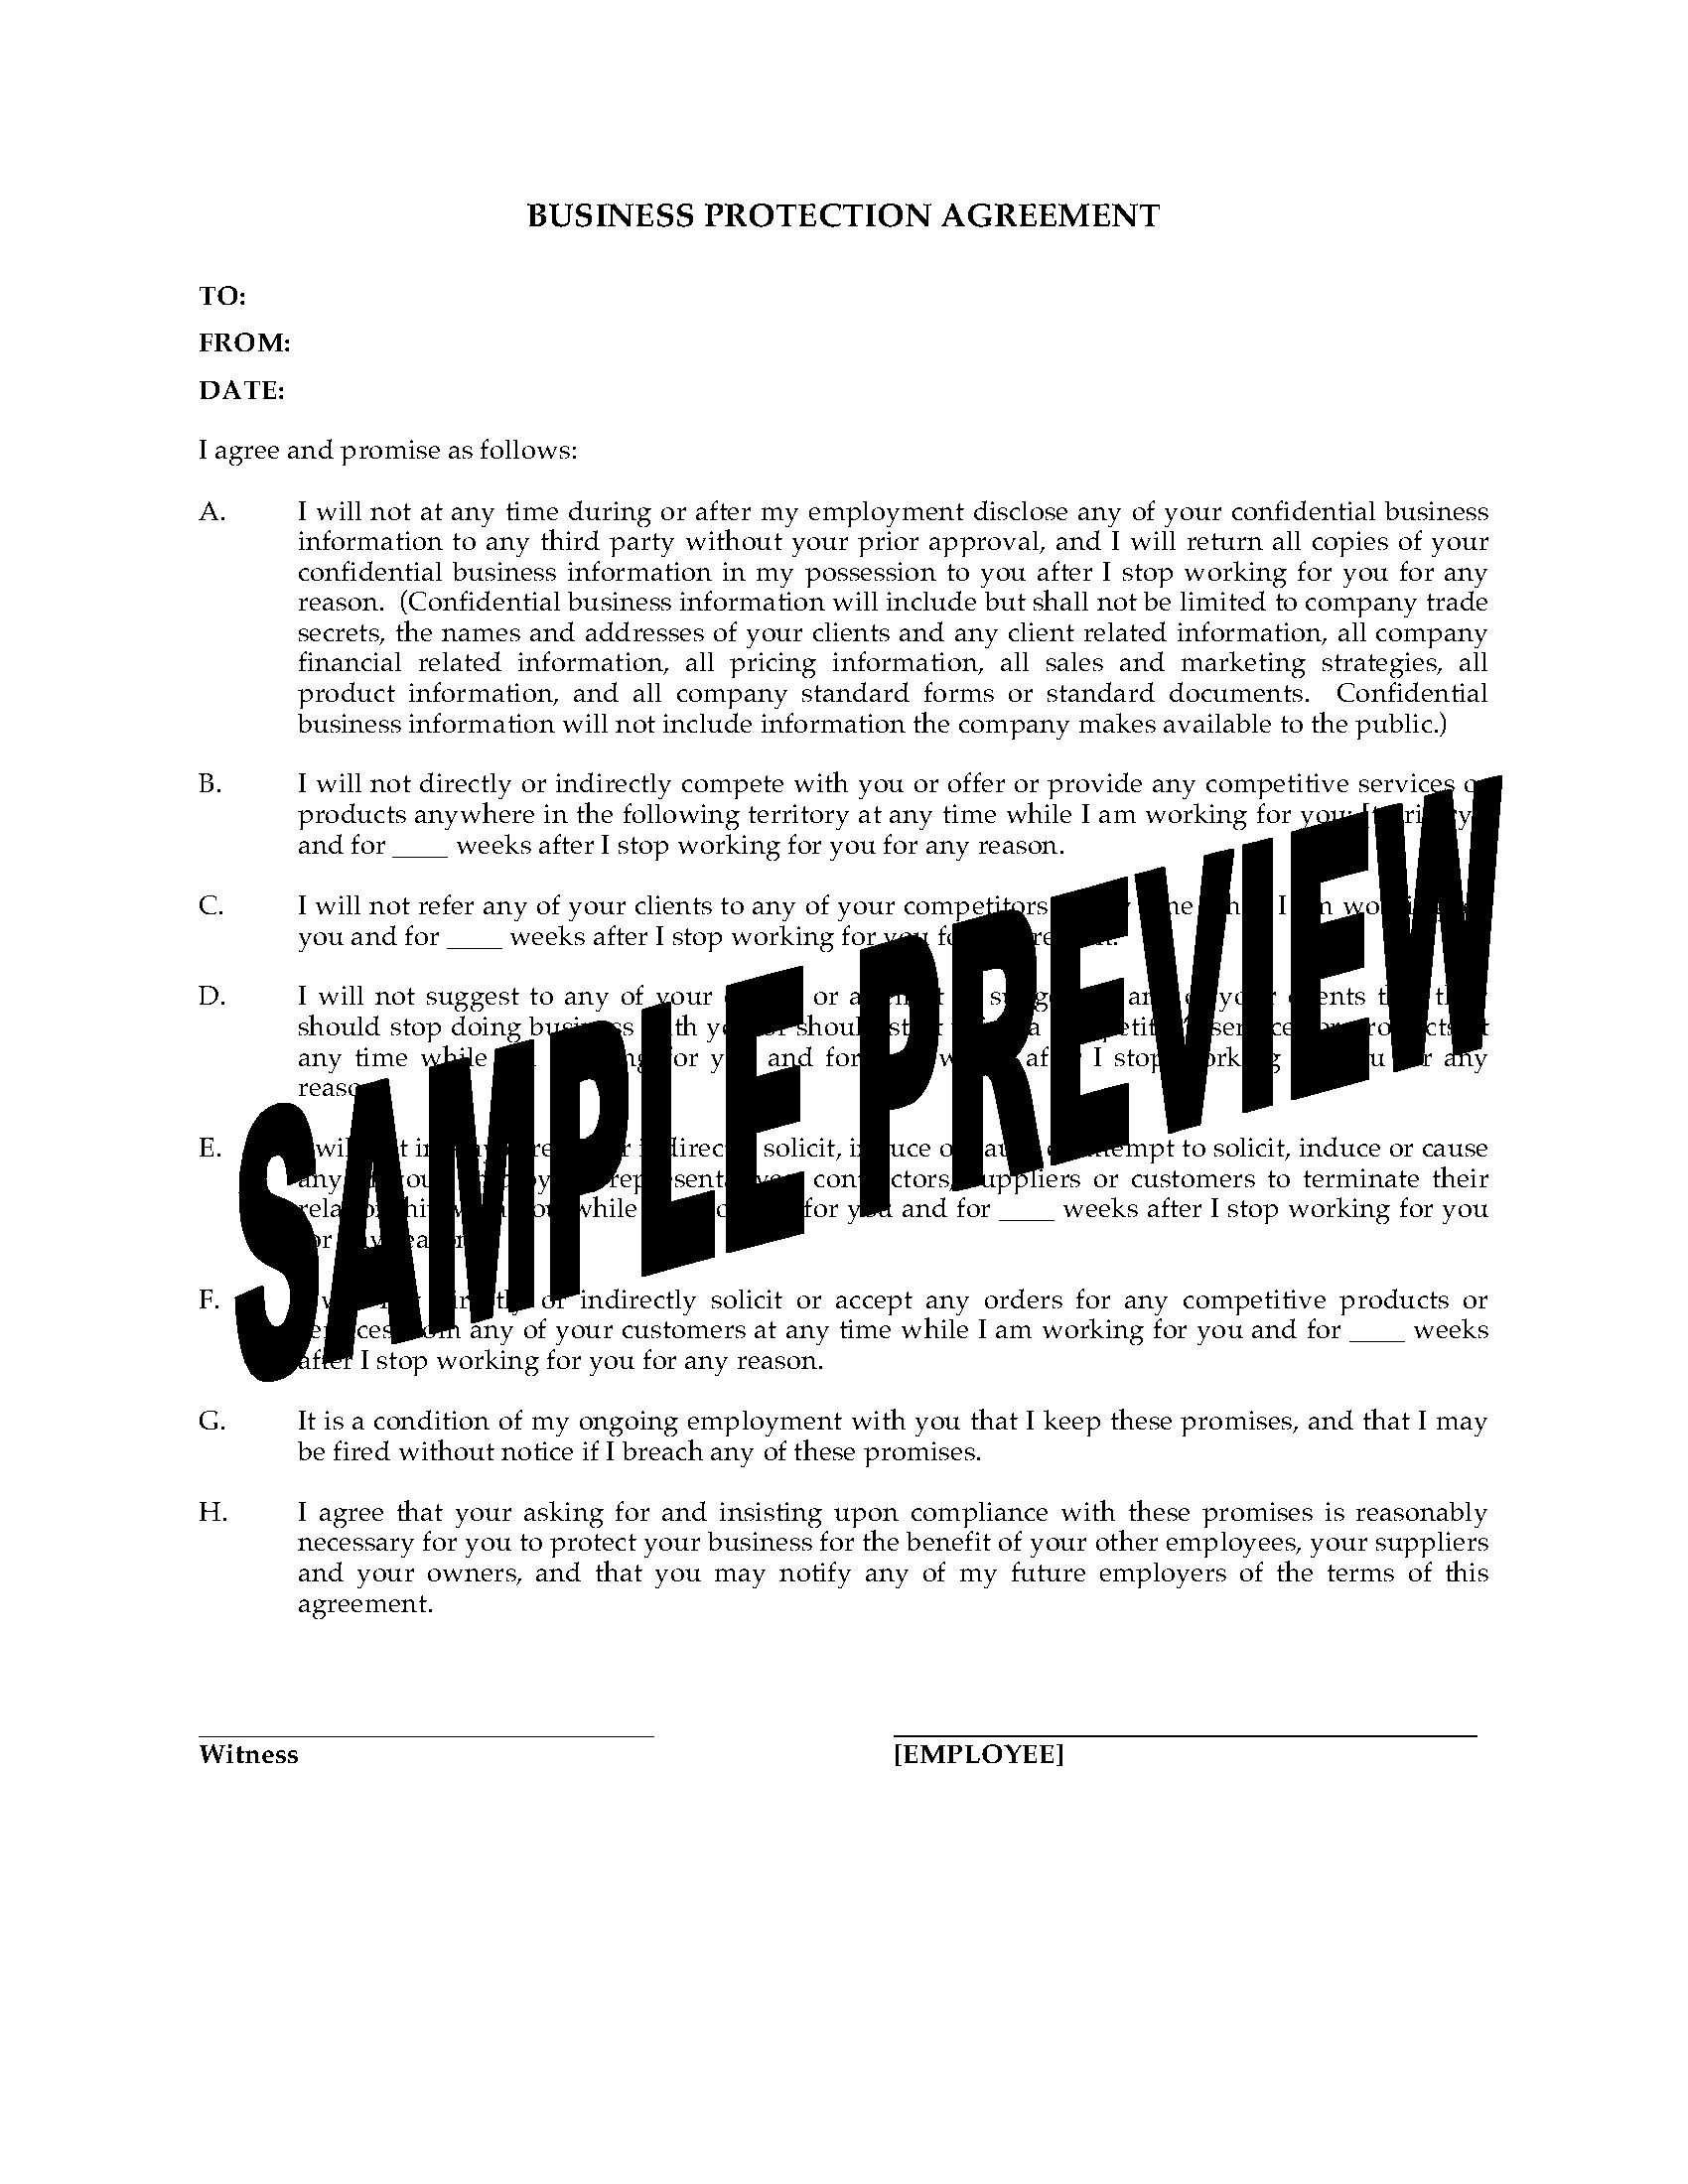 Business Protection Agreement For Departing Employee Legal Forms - Business and legal document templates